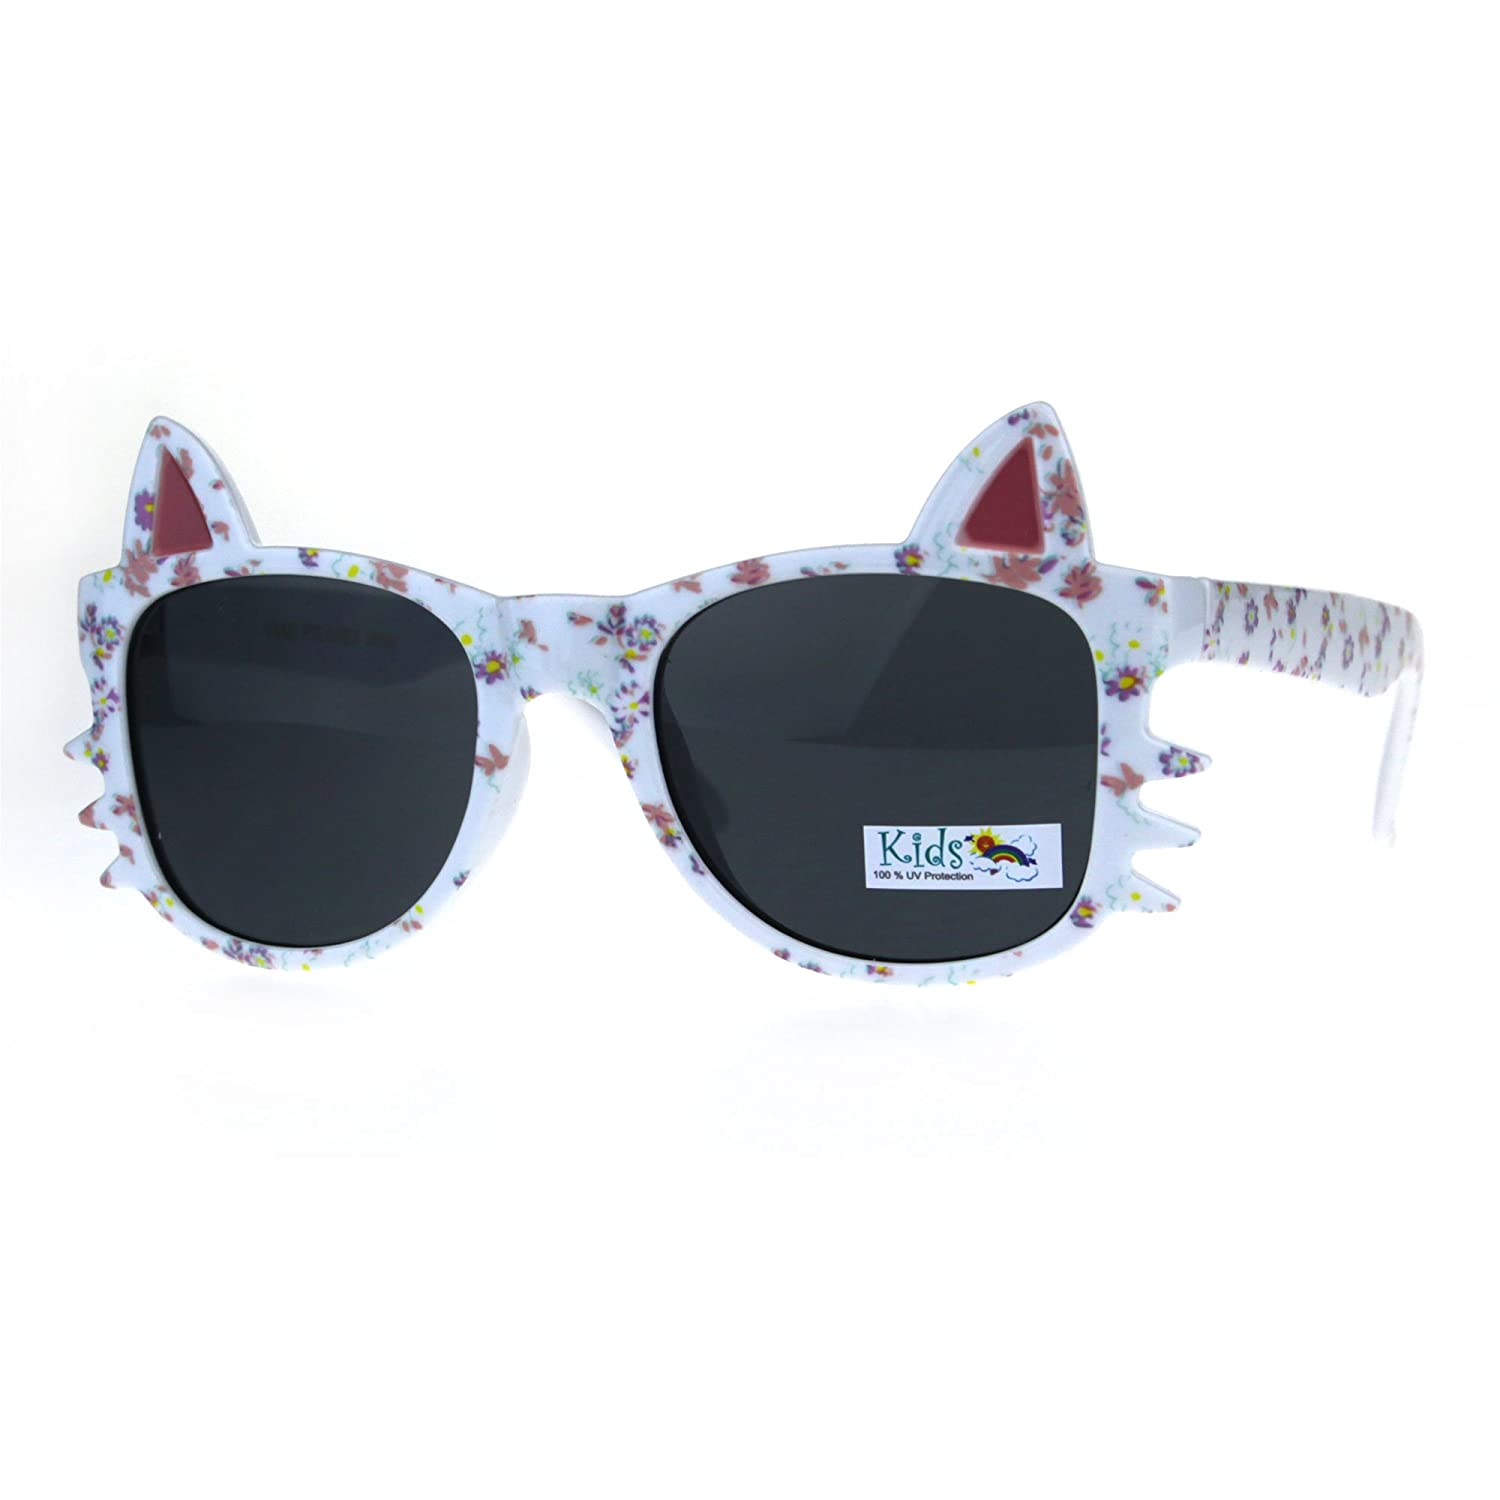 Childern Size Flower Print Kitty Ear Whisker Horn Rim Girls Sunglasses SA106 k800-bkglt